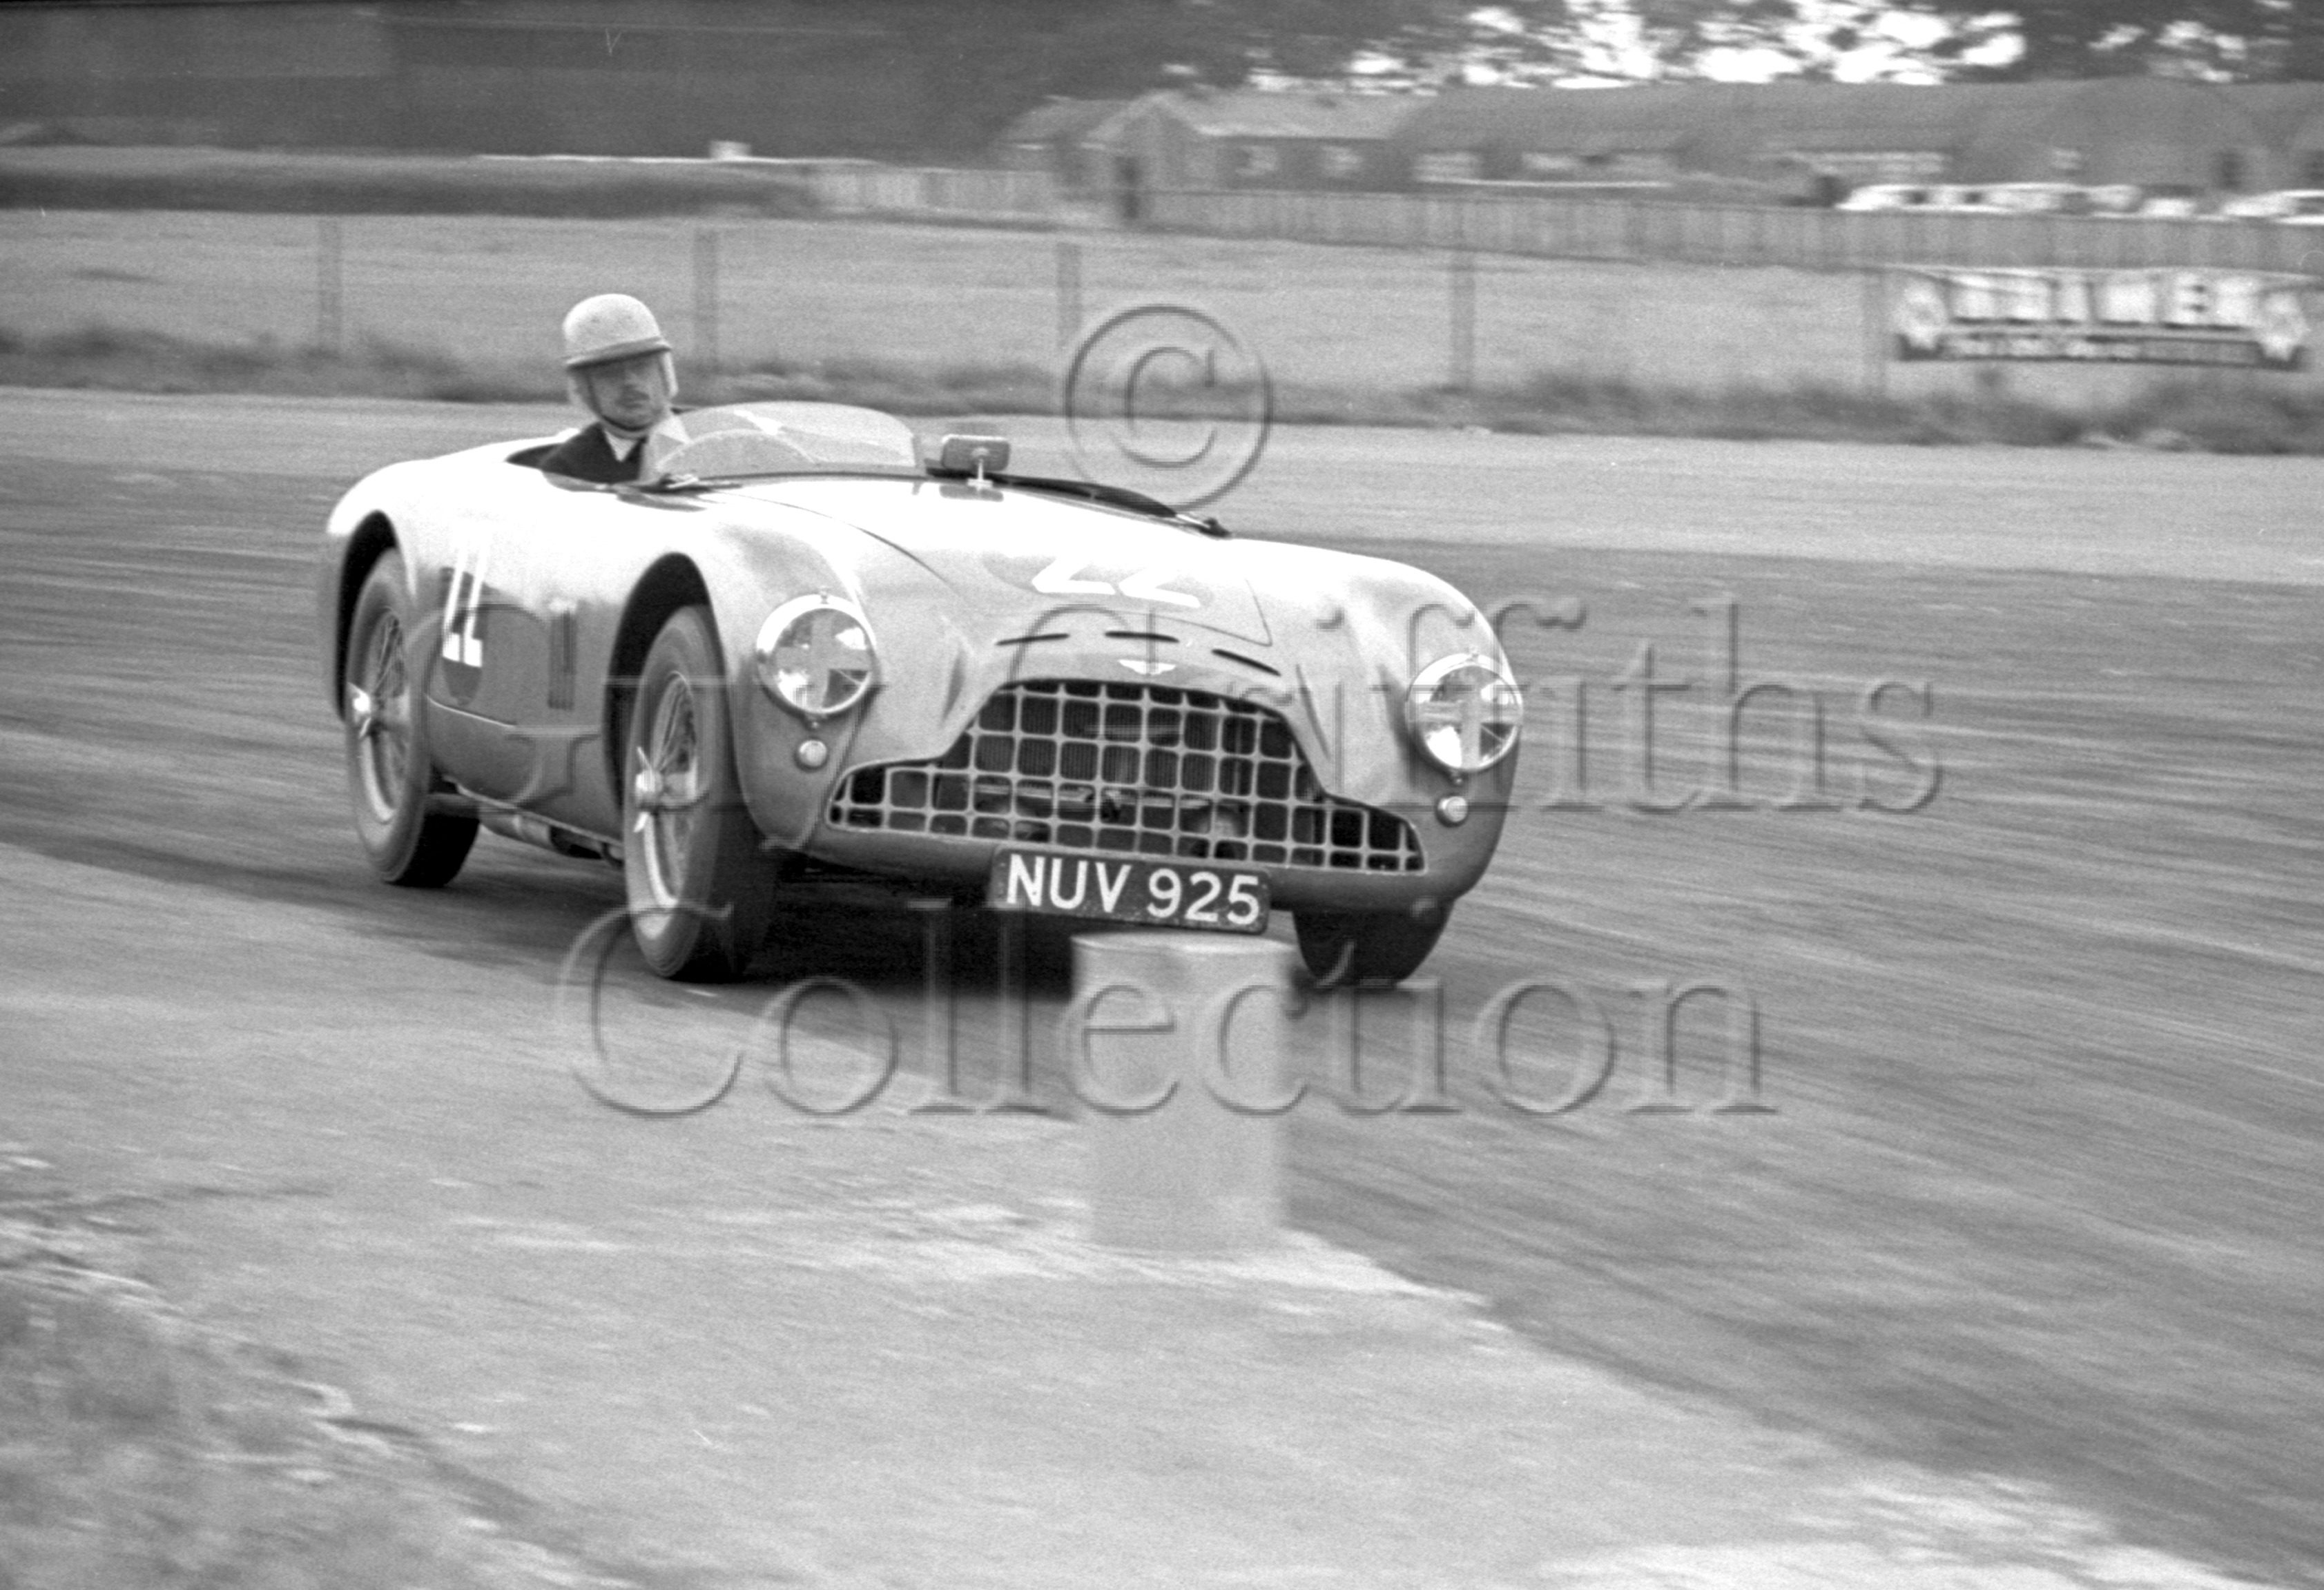 72-455–K-Downing–Aston-Martin-DB3-Siverstone–27-06-1953.jpg - The Guy Griffiths Collection